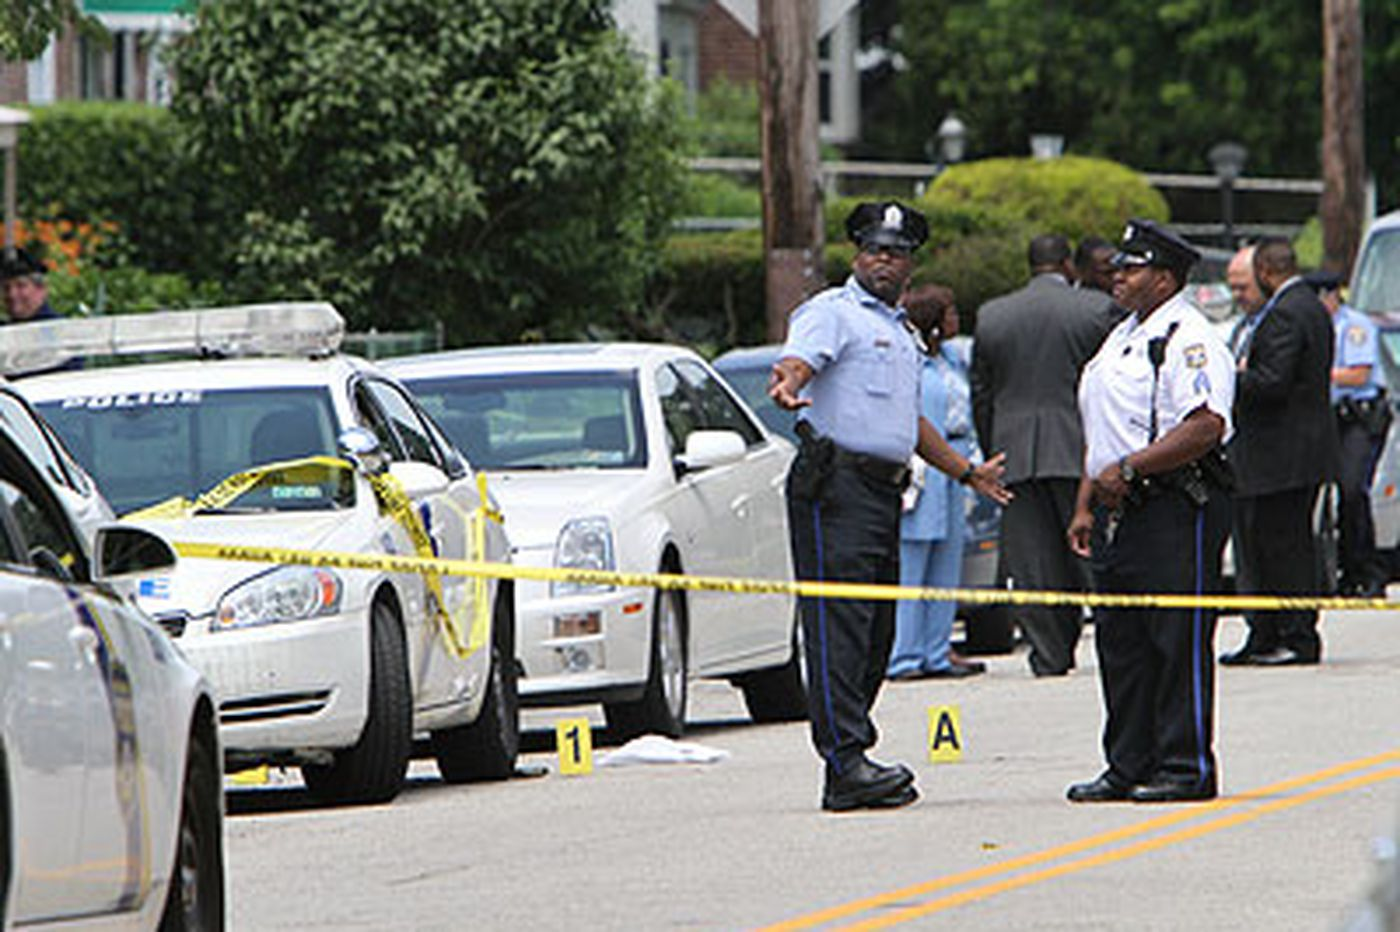 Philadelphia man shot to death by police officer